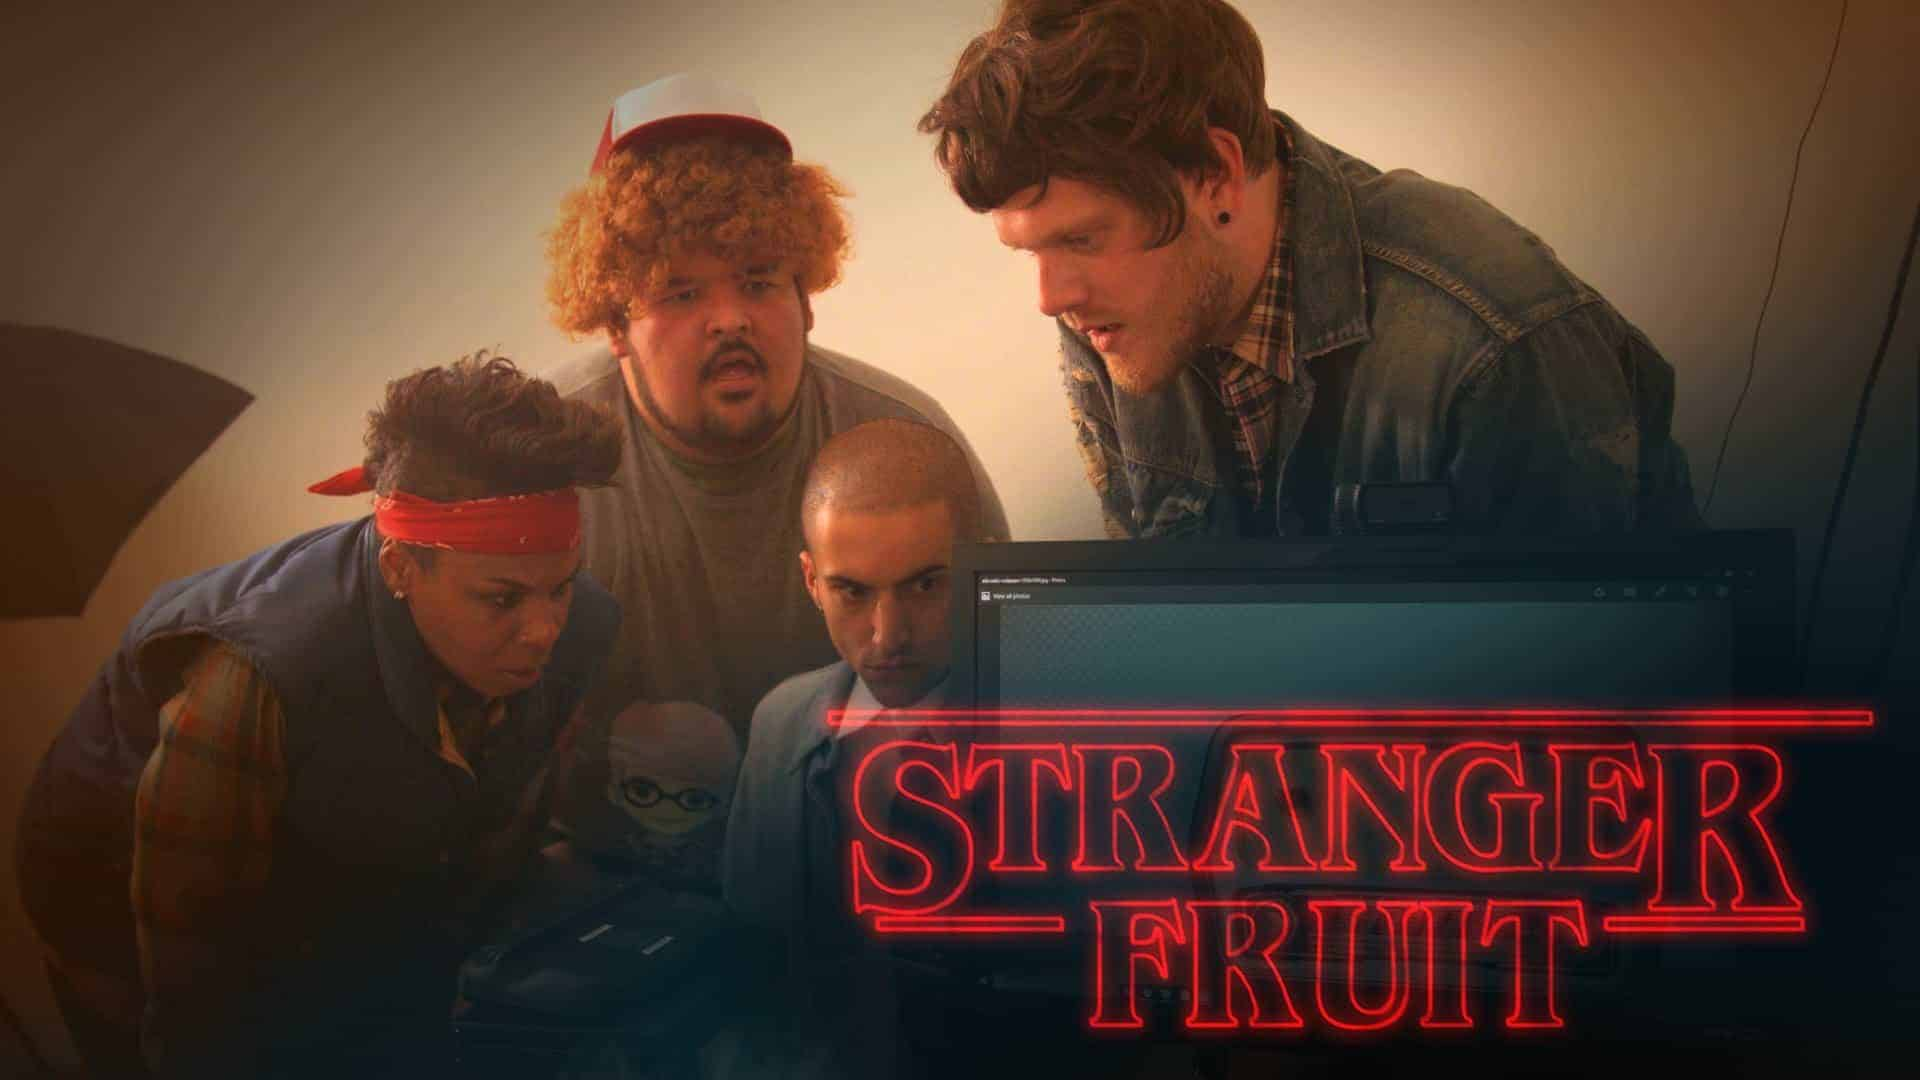 Stranger Things season 3 on Netflix Release date cast theories plot and everything you need to know Whats next for Eleven and the boys